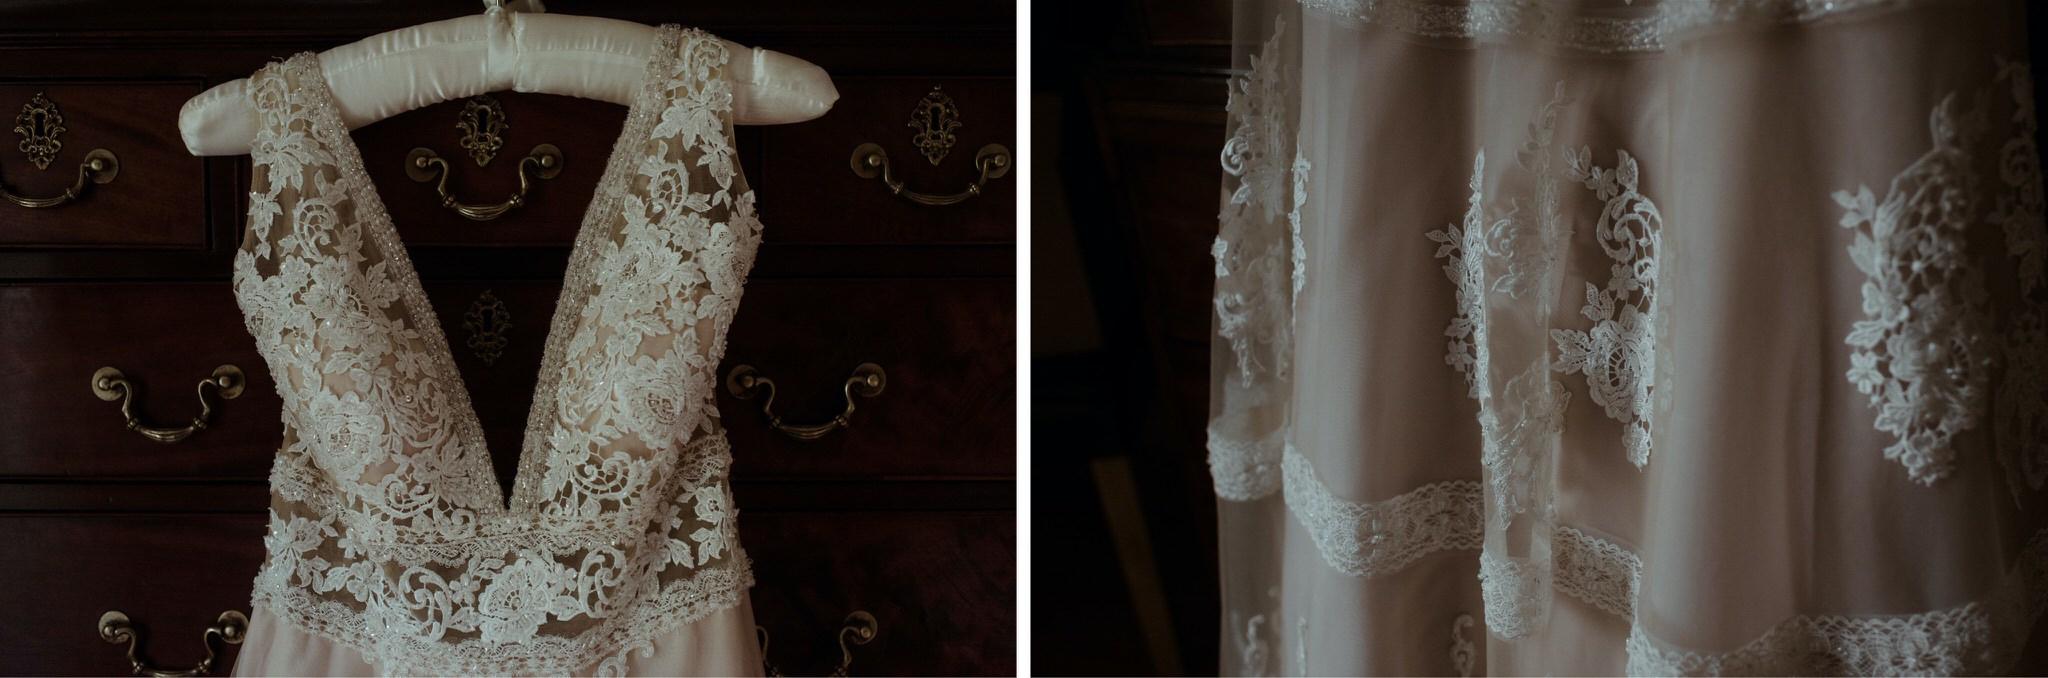 Details of lace on a wedding dress for a Scotland elopement